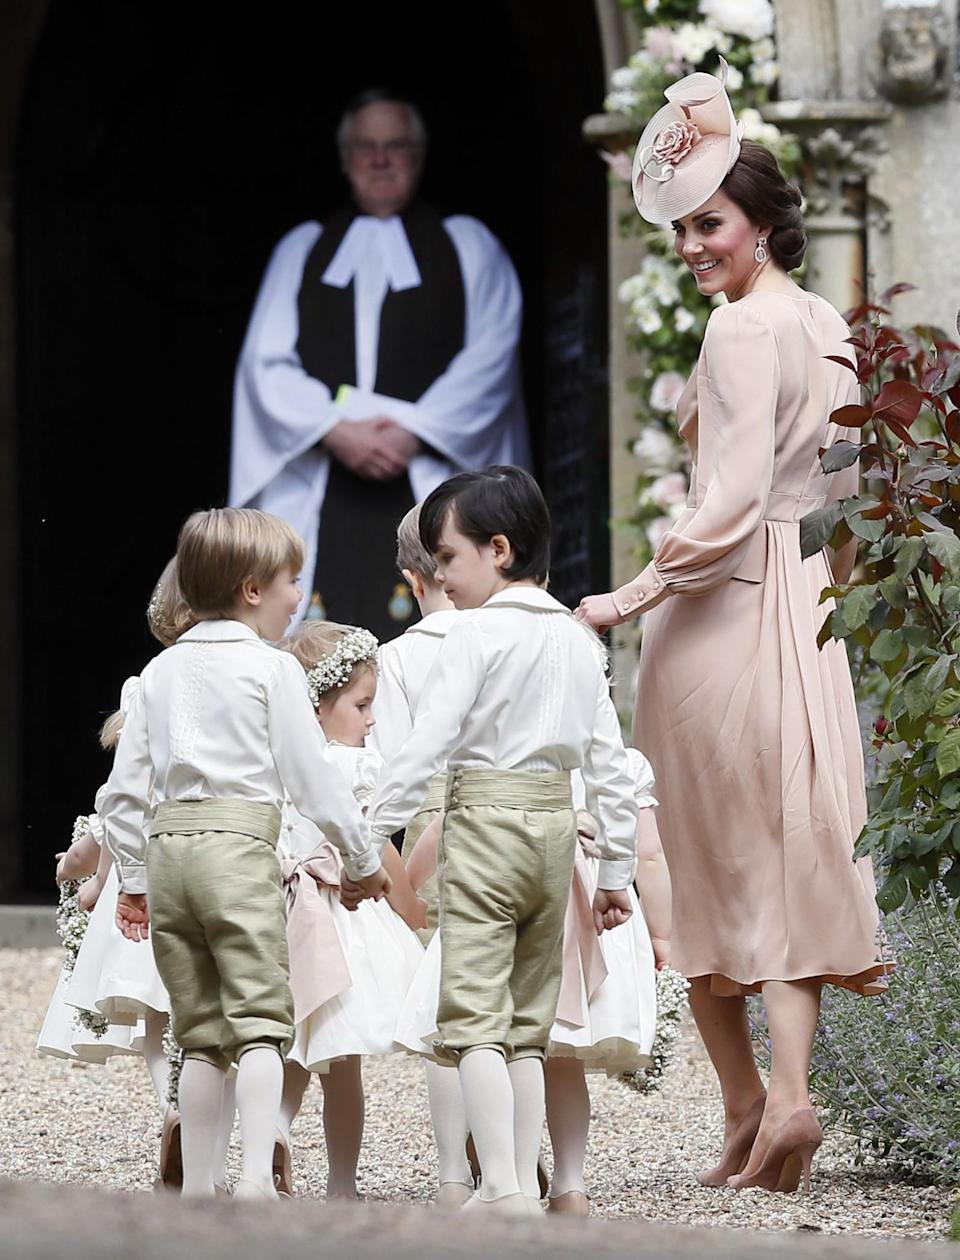 Kate made sure to not upstage her sister by wearing a dress from Alexander McQueen. The rose pink design was a midi style with a V-neck that she paired with a matching floral hat and suede heels. (Photo: PA)